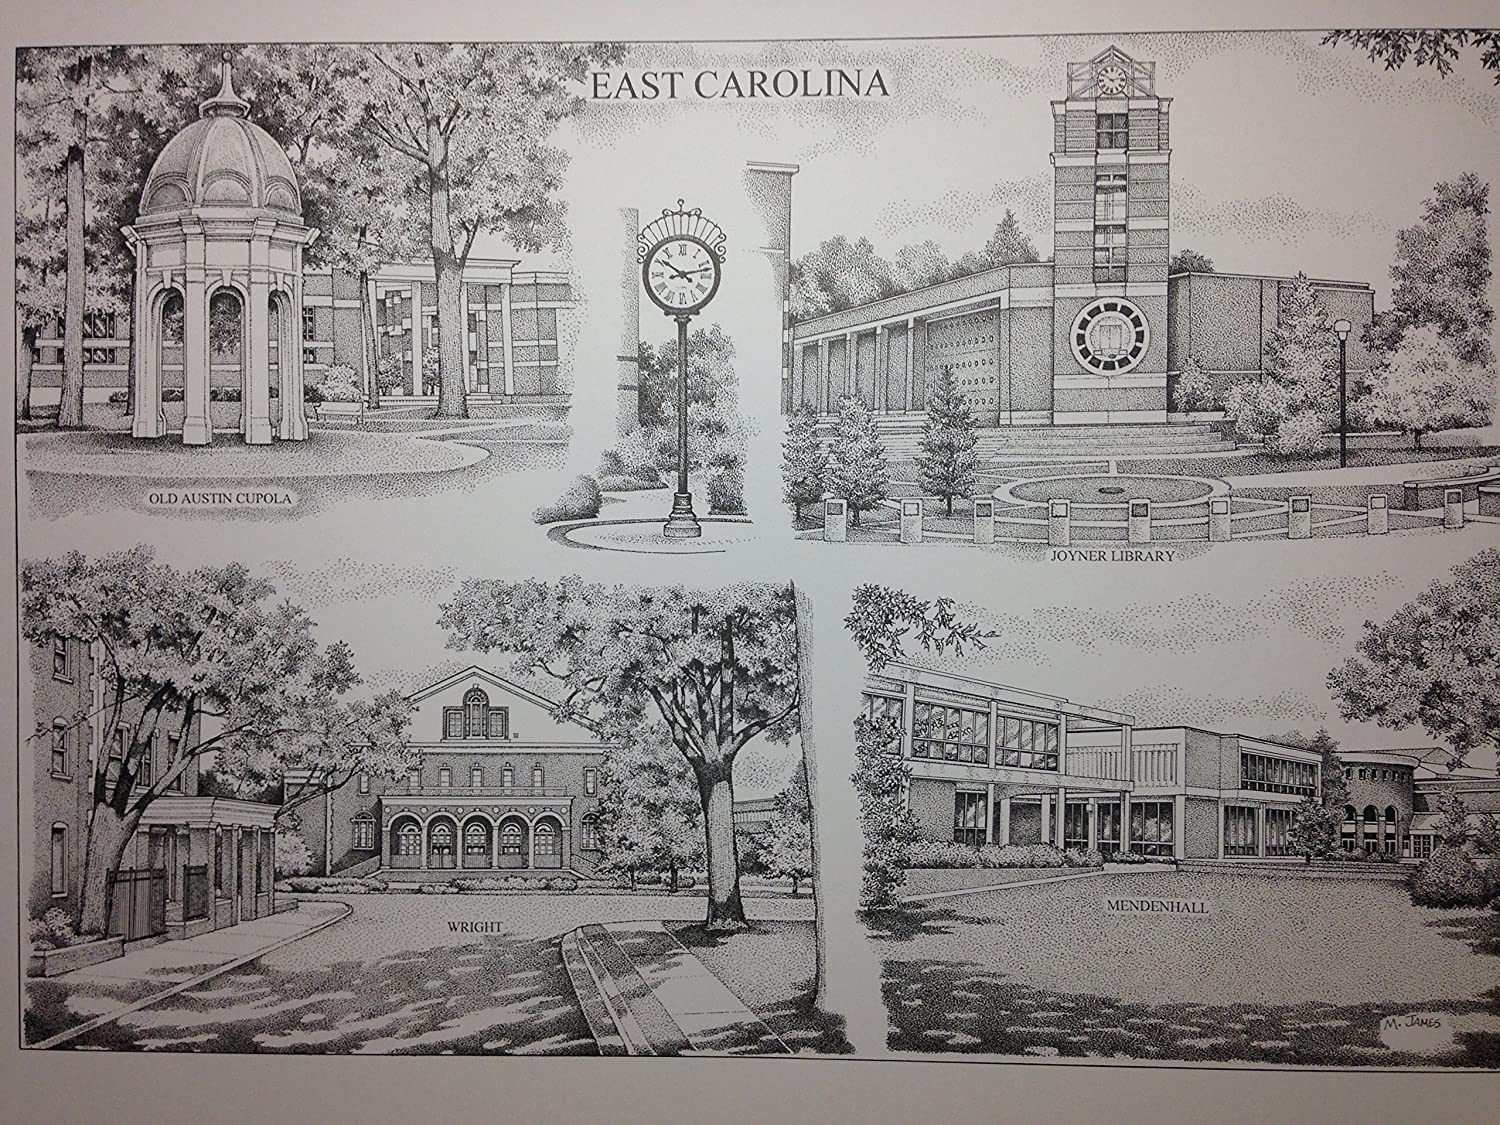 East Carolina 16x20 pen and ink collage print